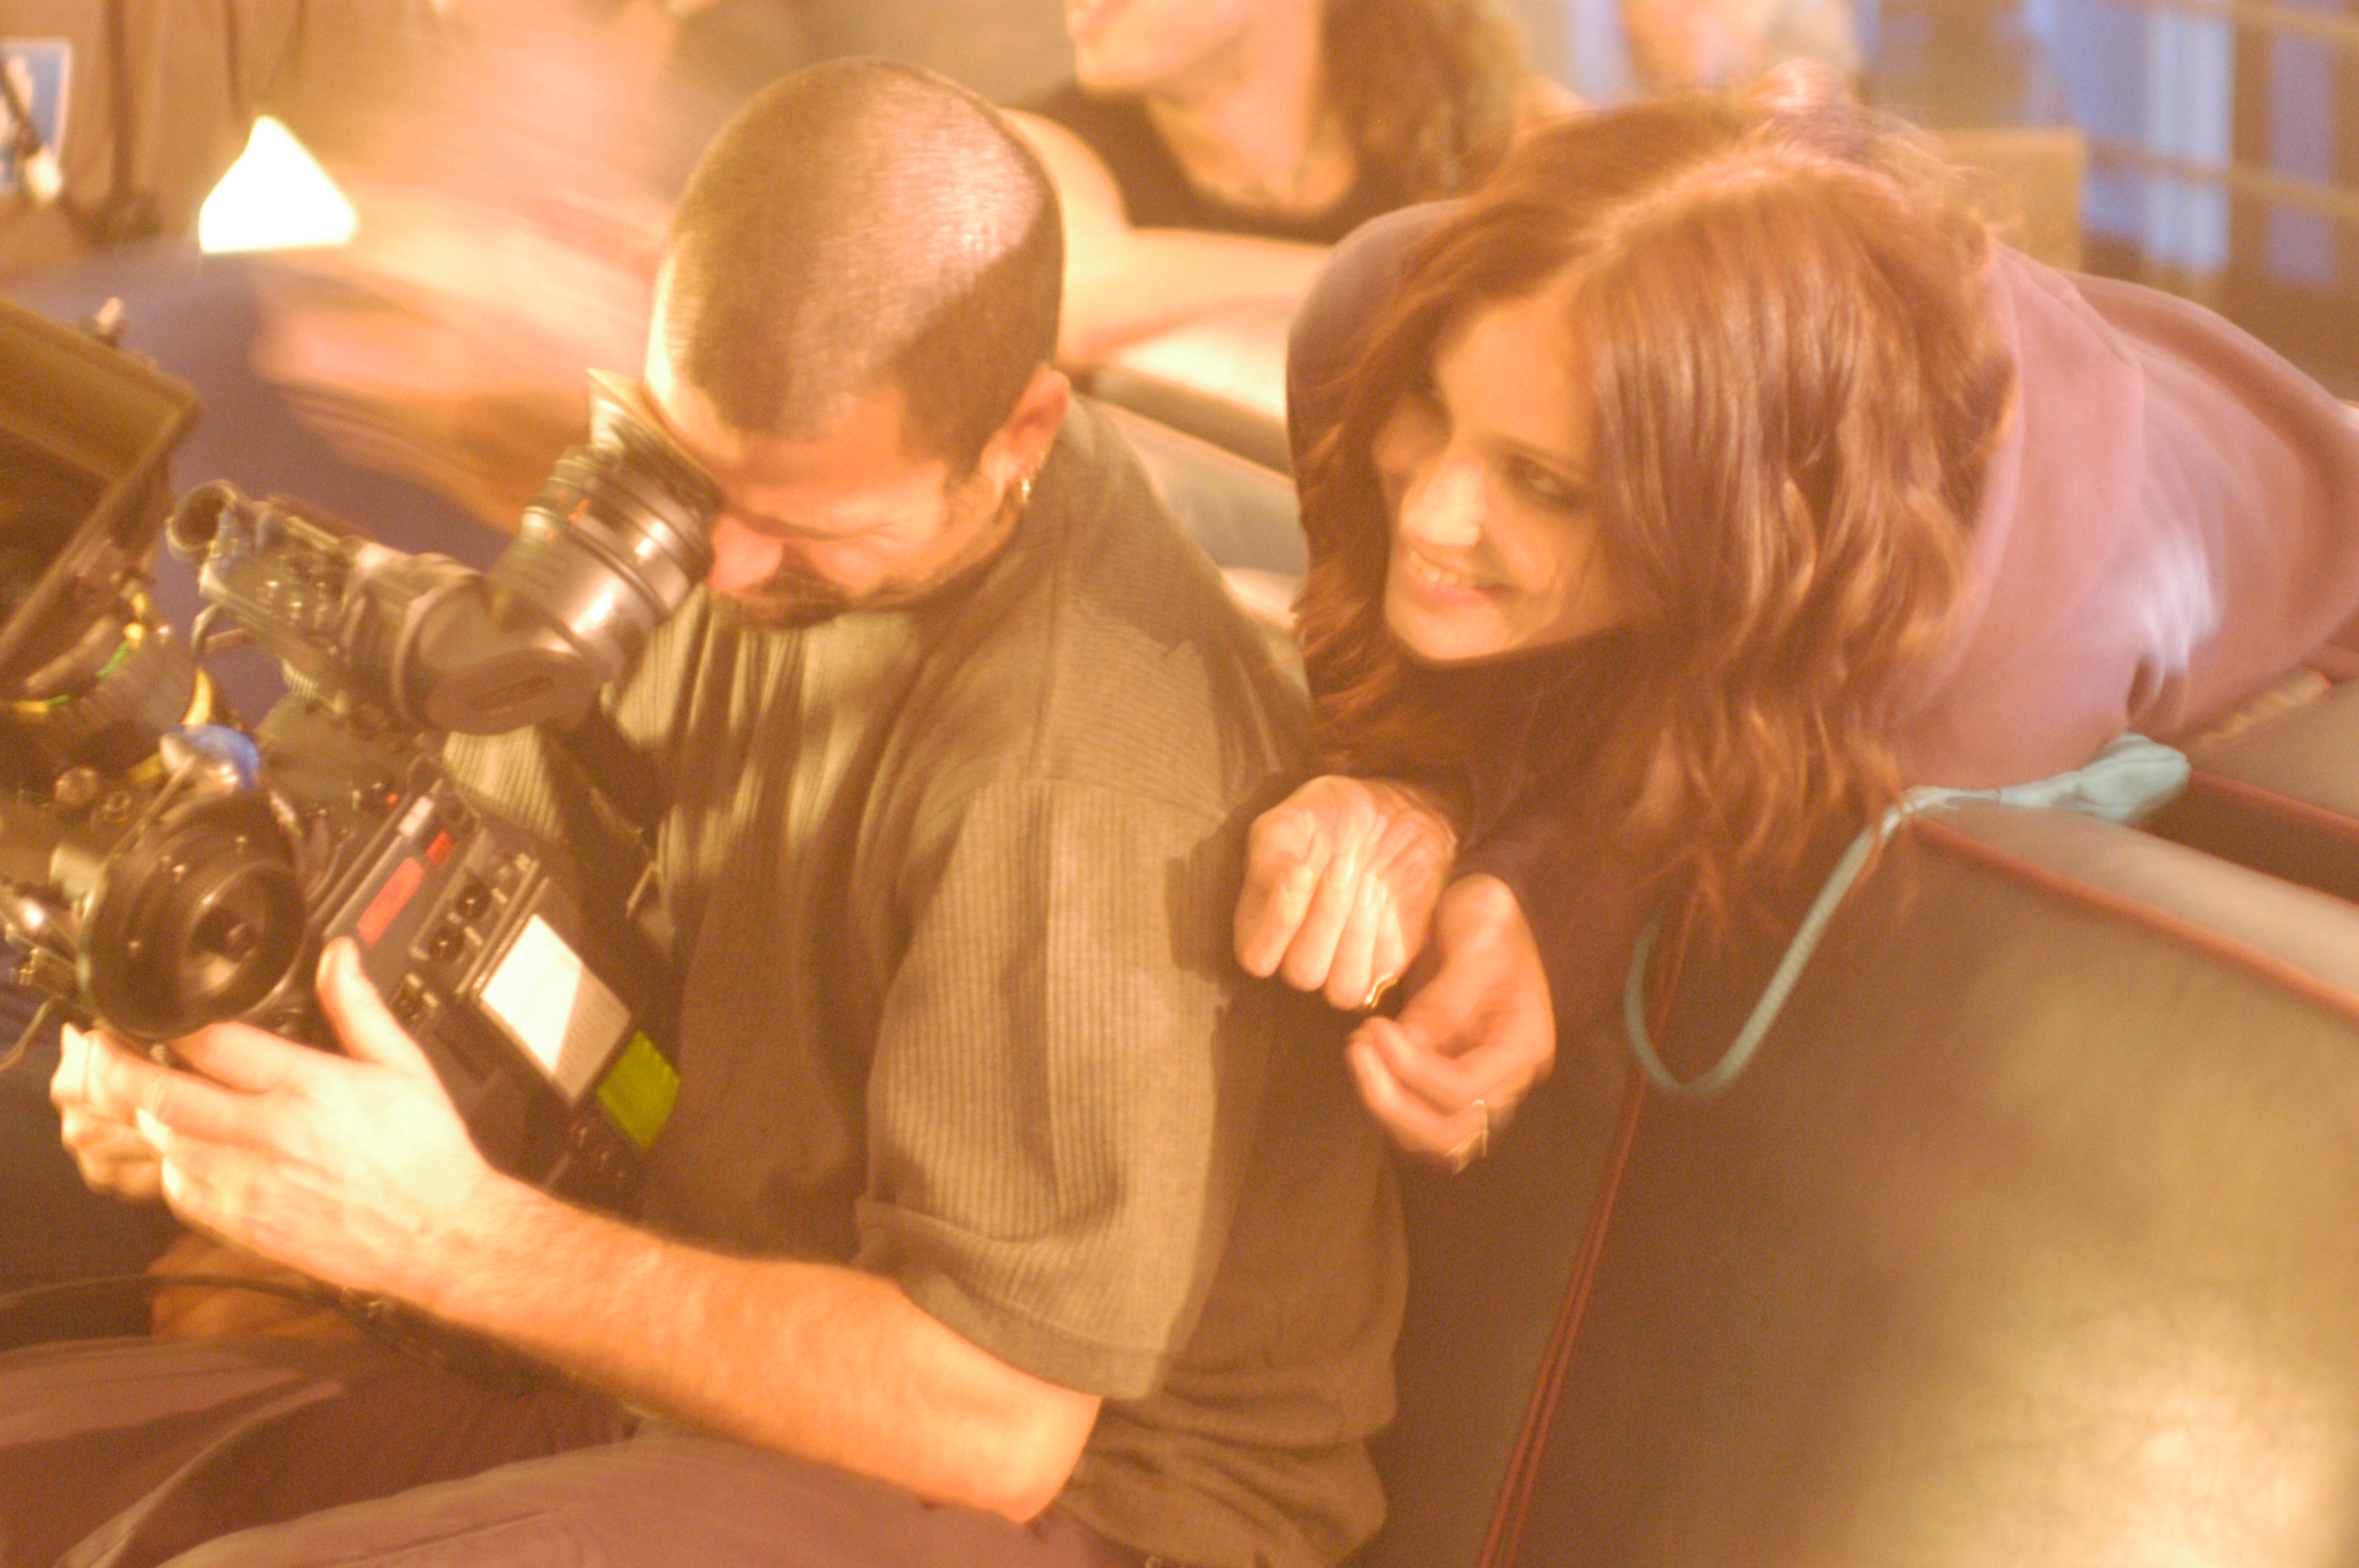 Pure - Cinematographer Jean-Pierre Gauthier and actress Laura Jordan on set 2003